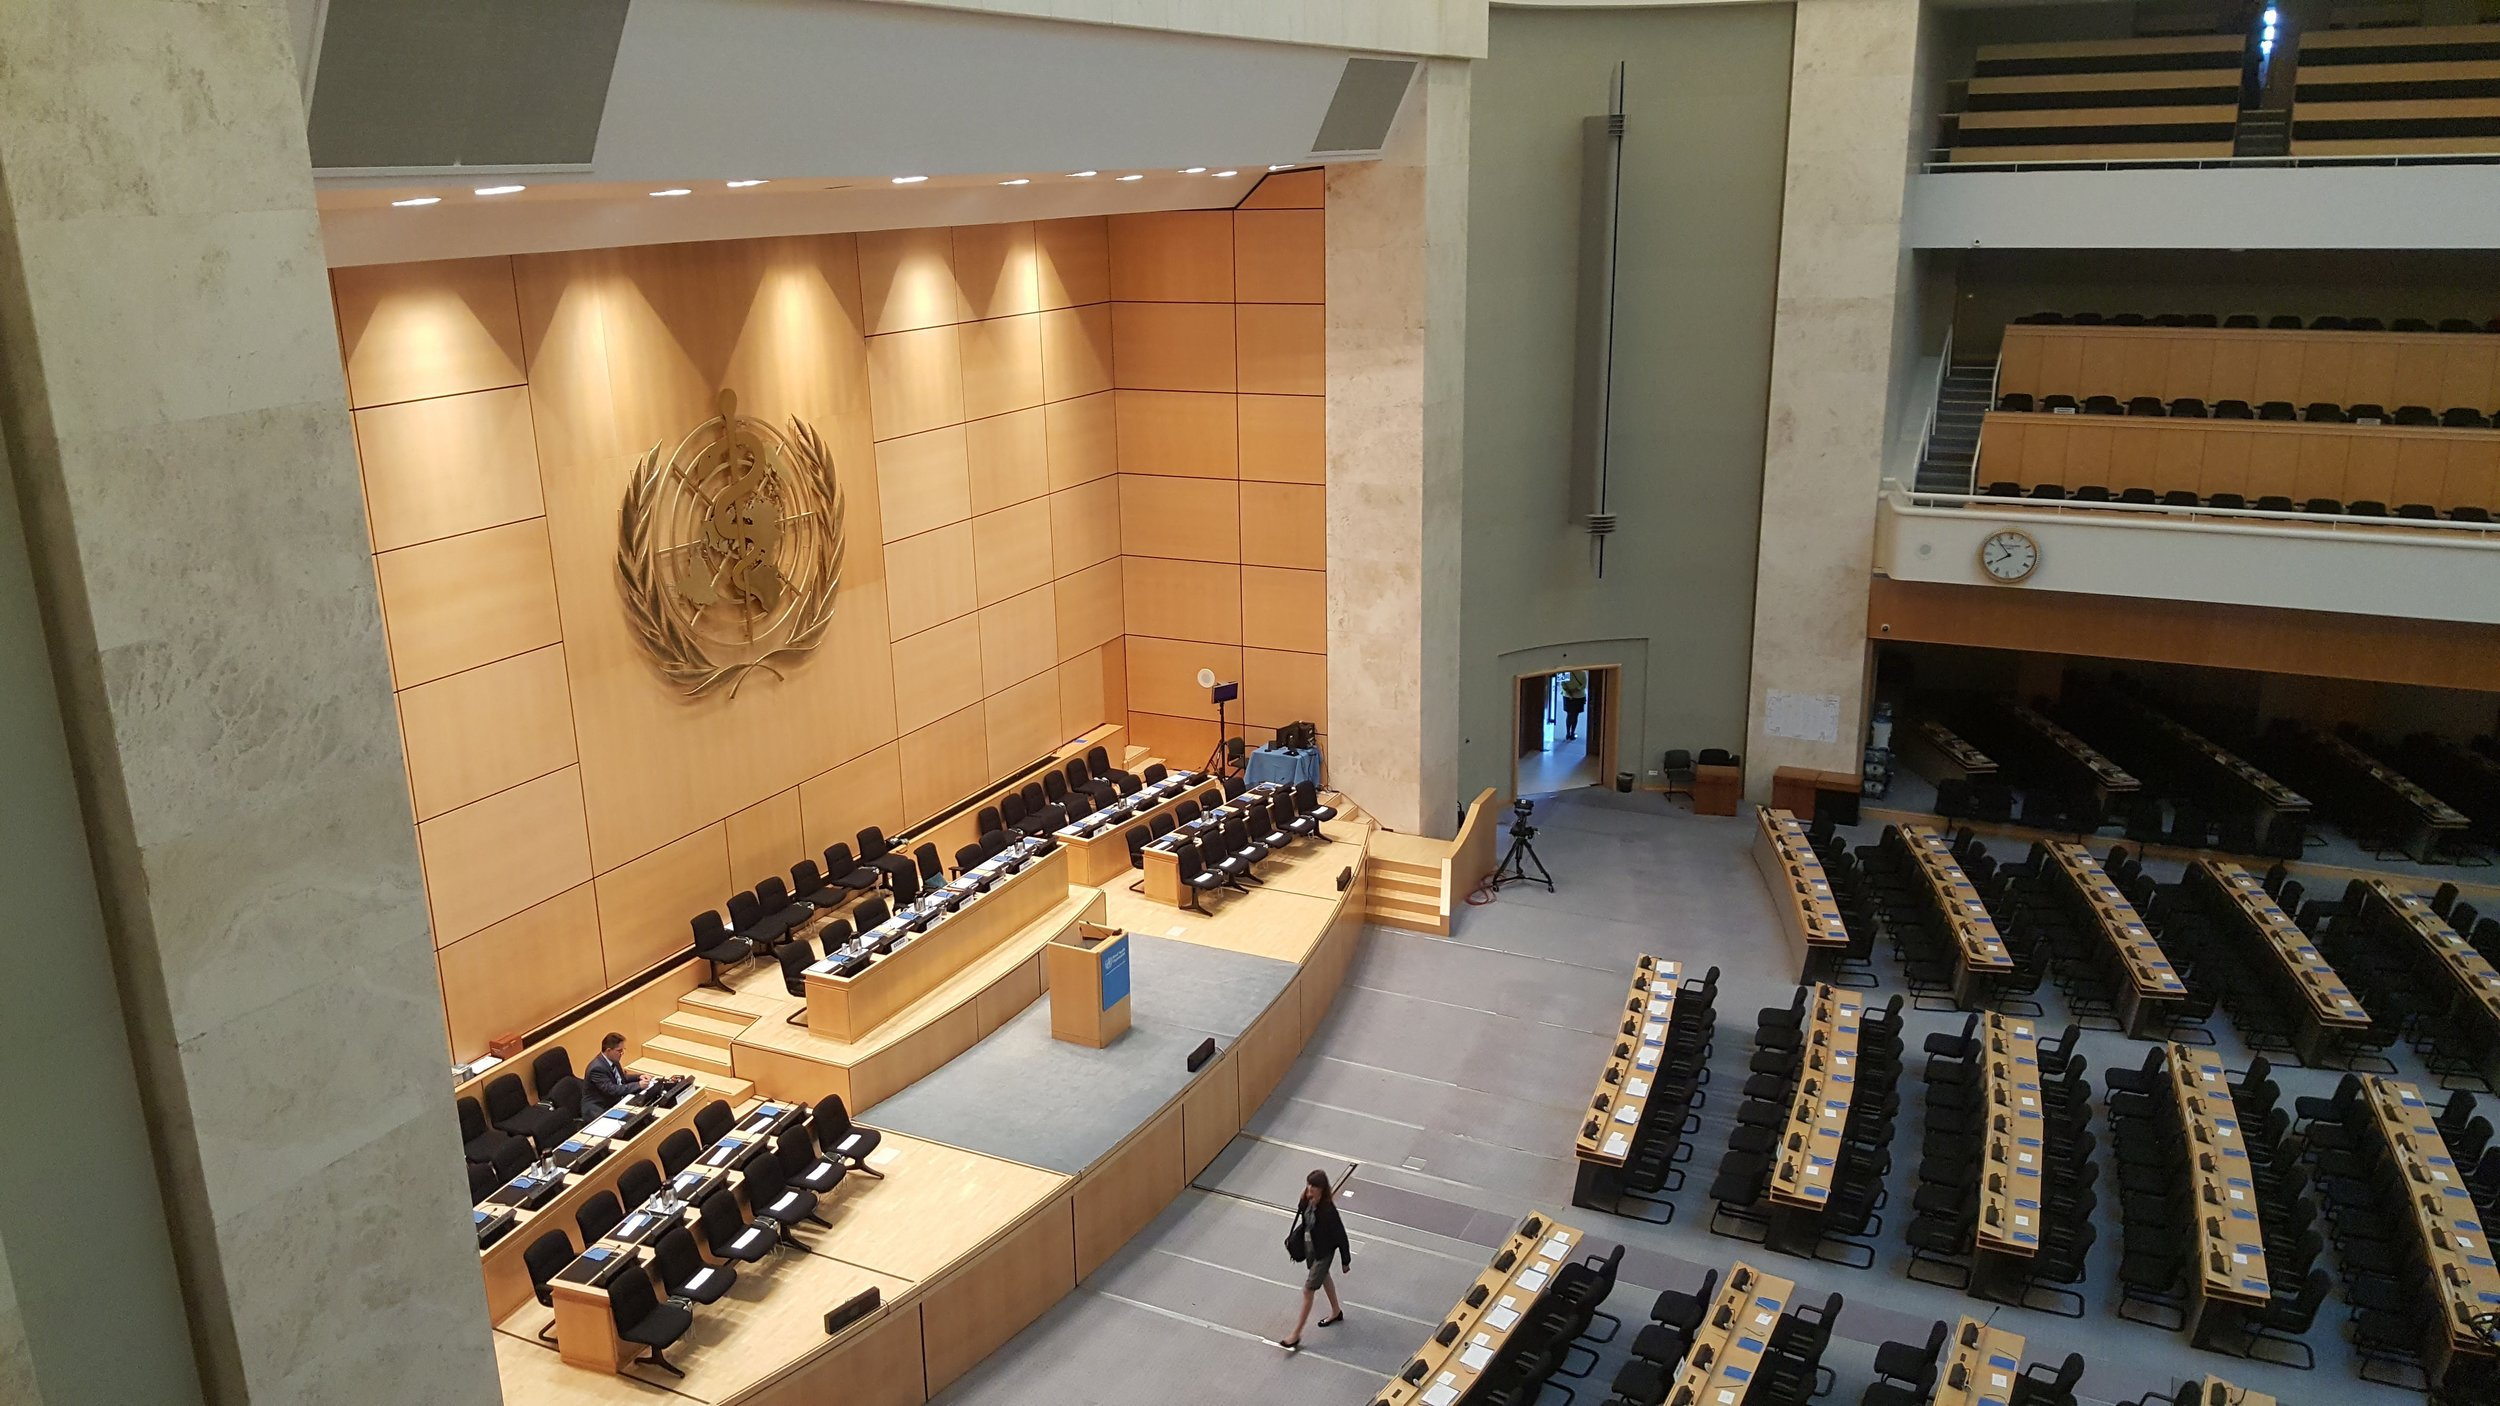 The Assembly Hall of the 70th World Health Assembly, Palais des Nations, Geneva, Switzerland on the morning of the opening of the event. May 22, 2017